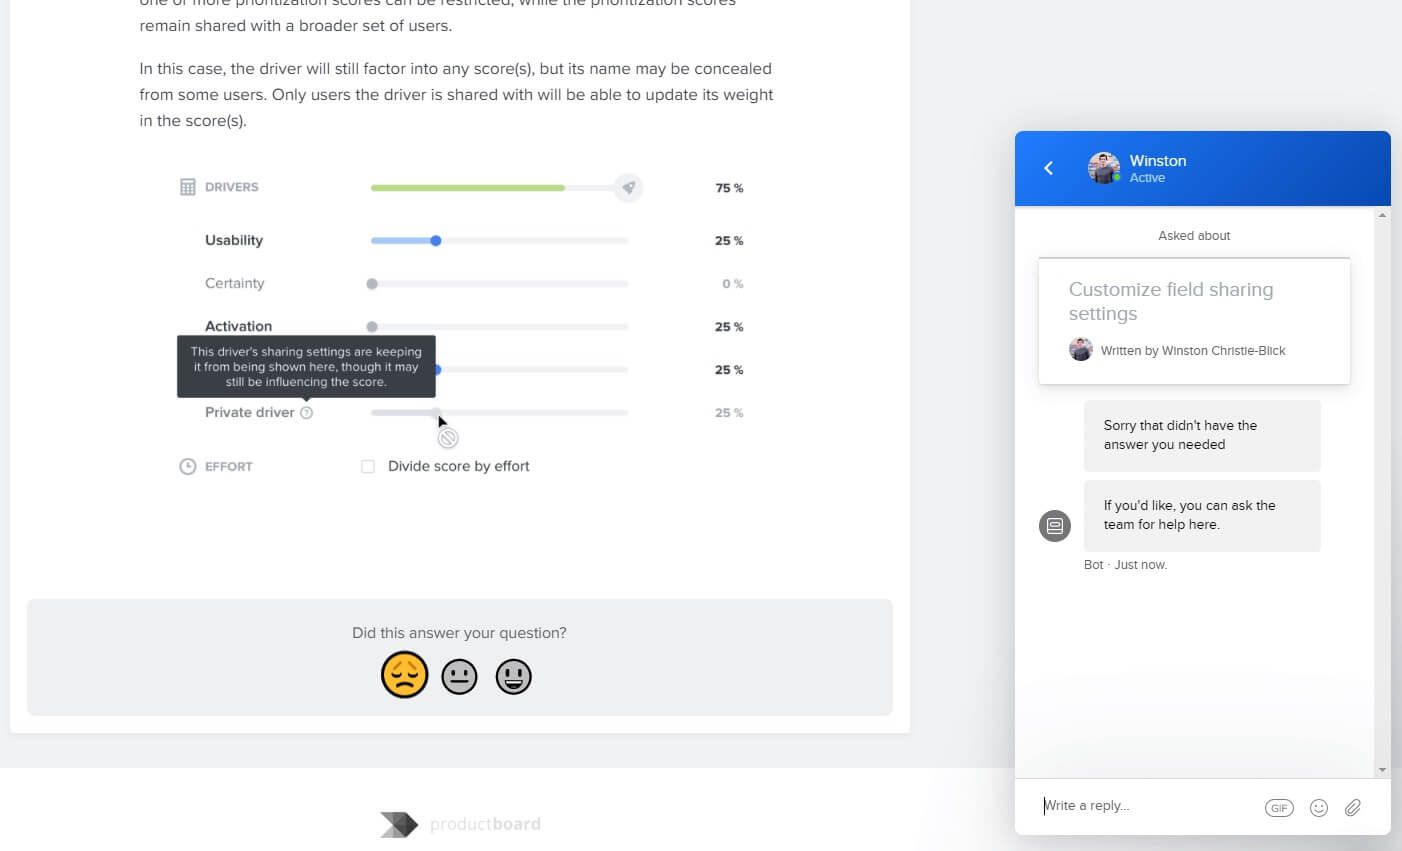 If a customer doesn't get the information they need from the productboard knowledge base, the Intercom task bot will immediately connect that customer with the support team.